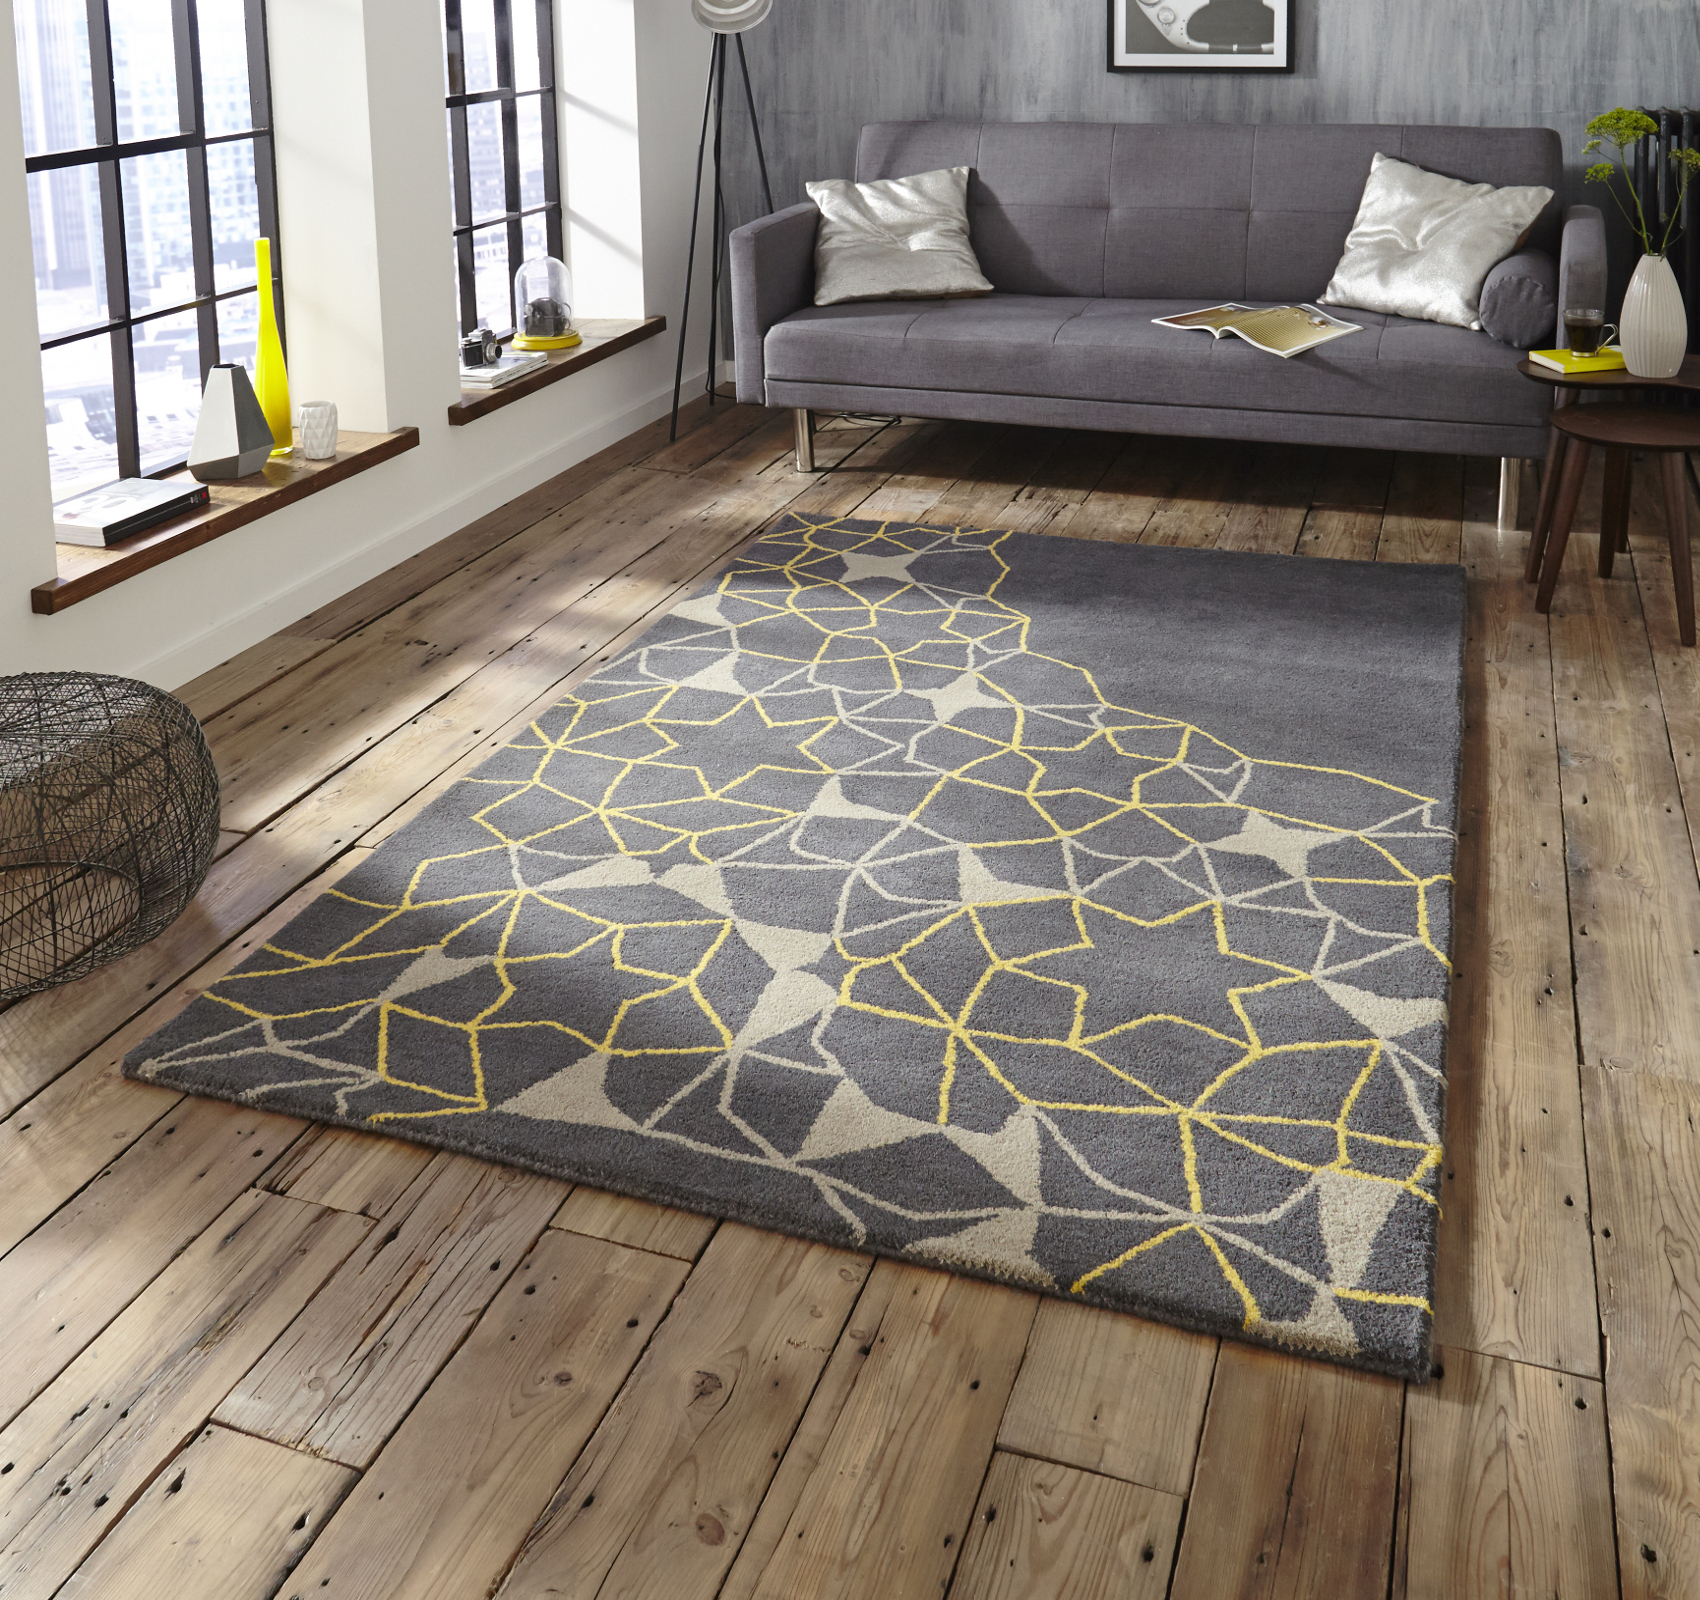 Spectrum Hand Tufted Arrows Stars Rug 100 Wool Modern